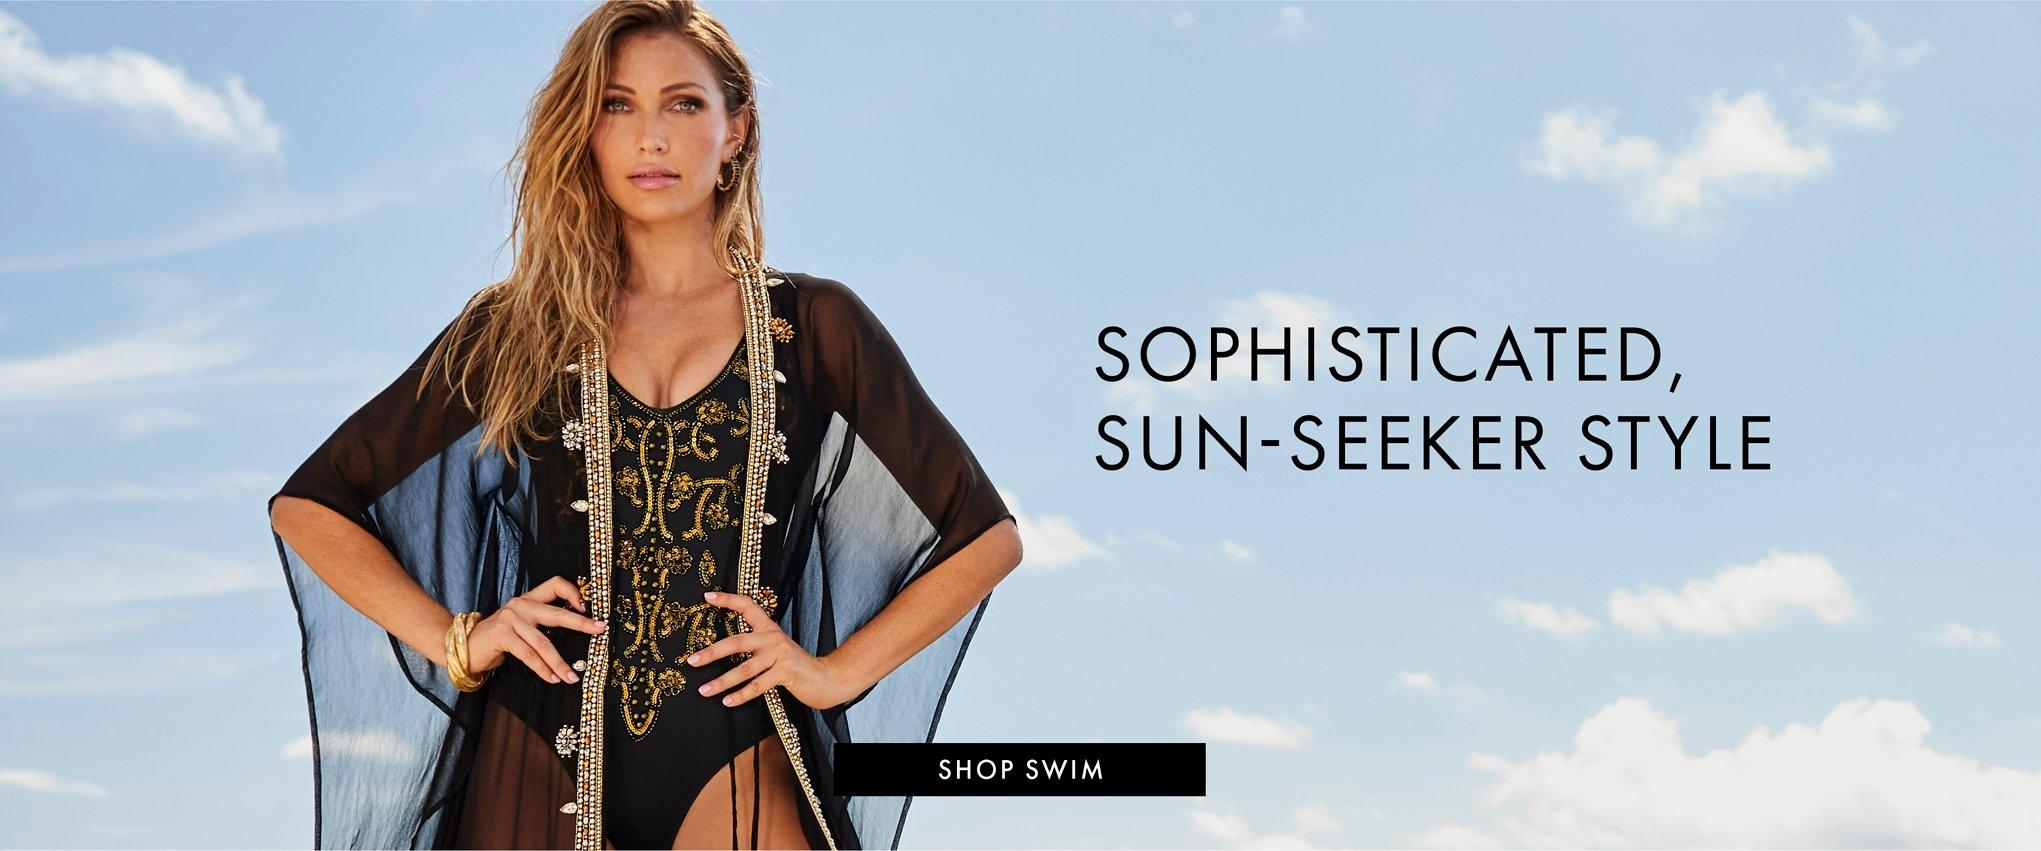 model wearing a black and gold embroidered one-piece swimsuit and black sheer gold jeweled duster cover up.